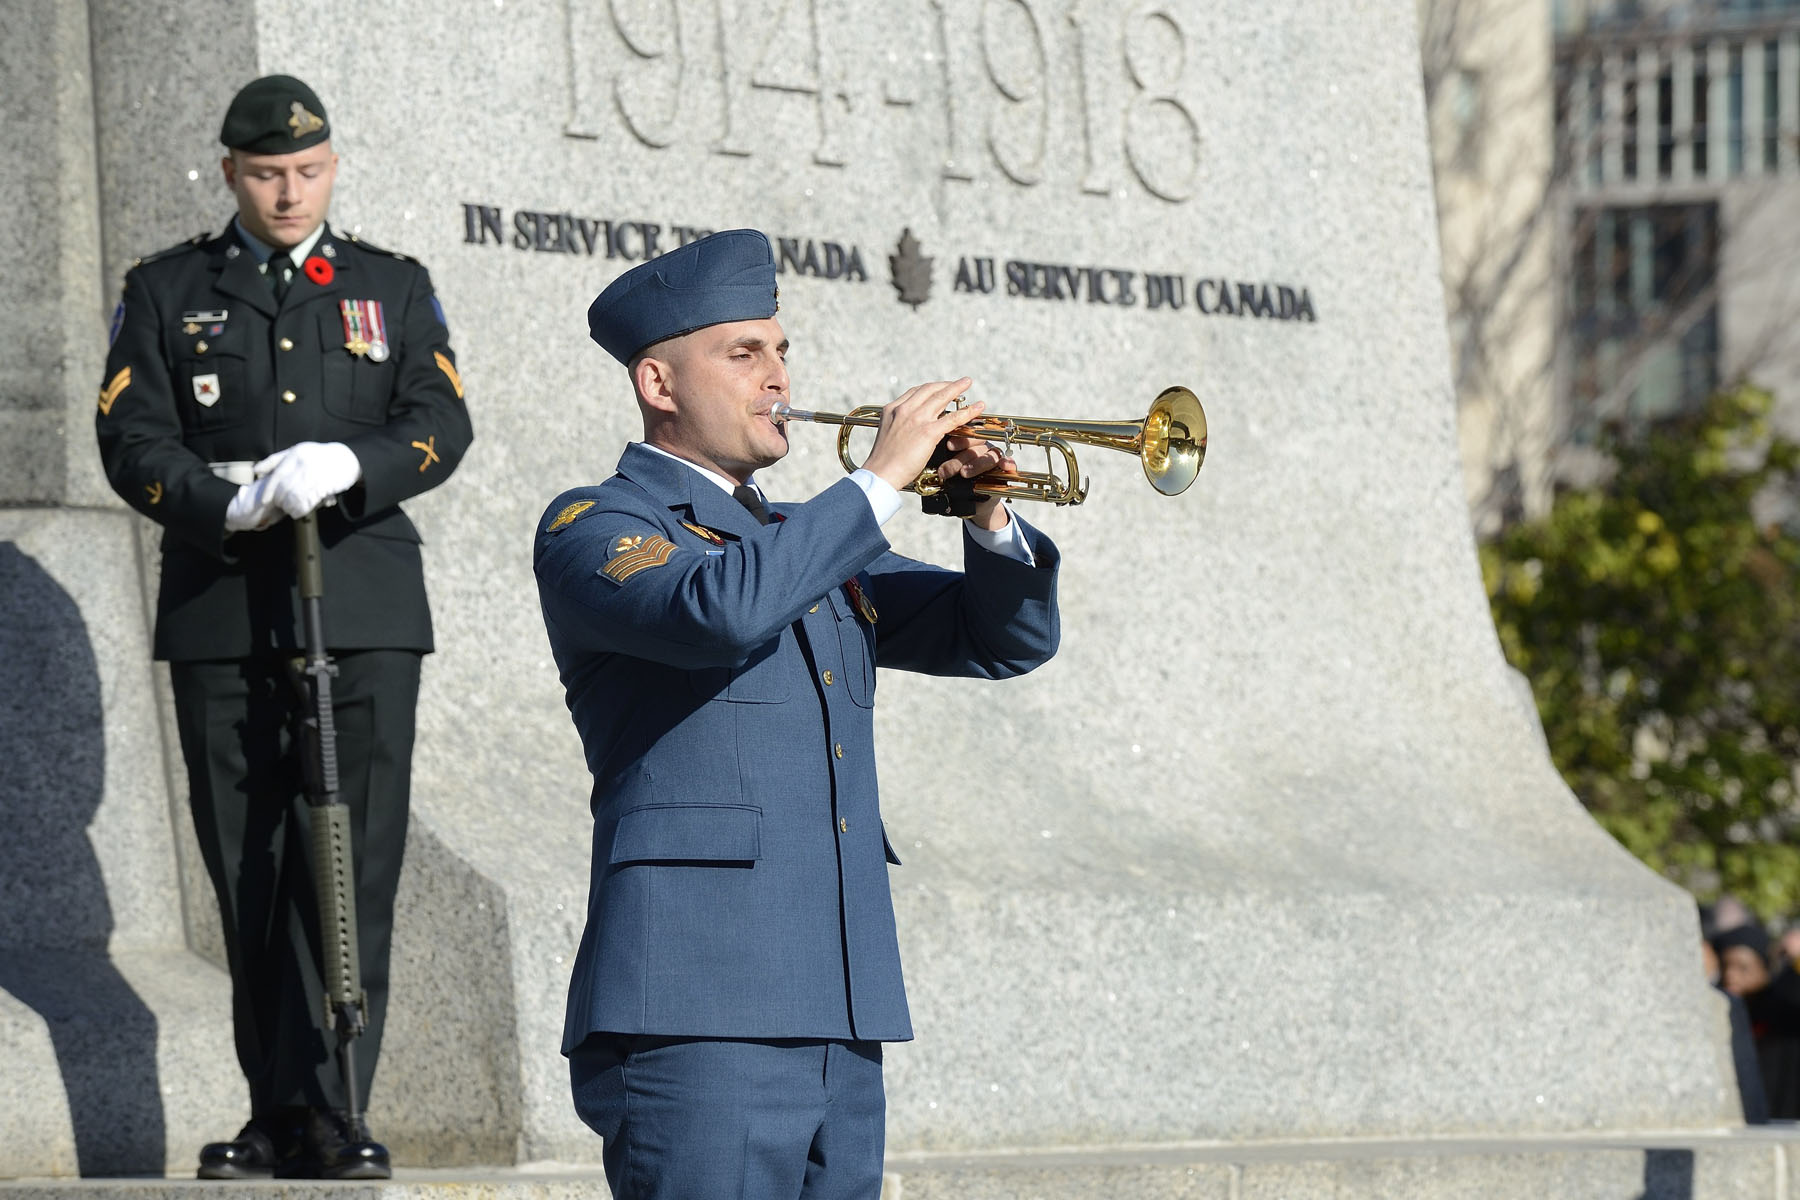 As per tradition, the ceremony took place at the National War Memorial, in Ottawa.